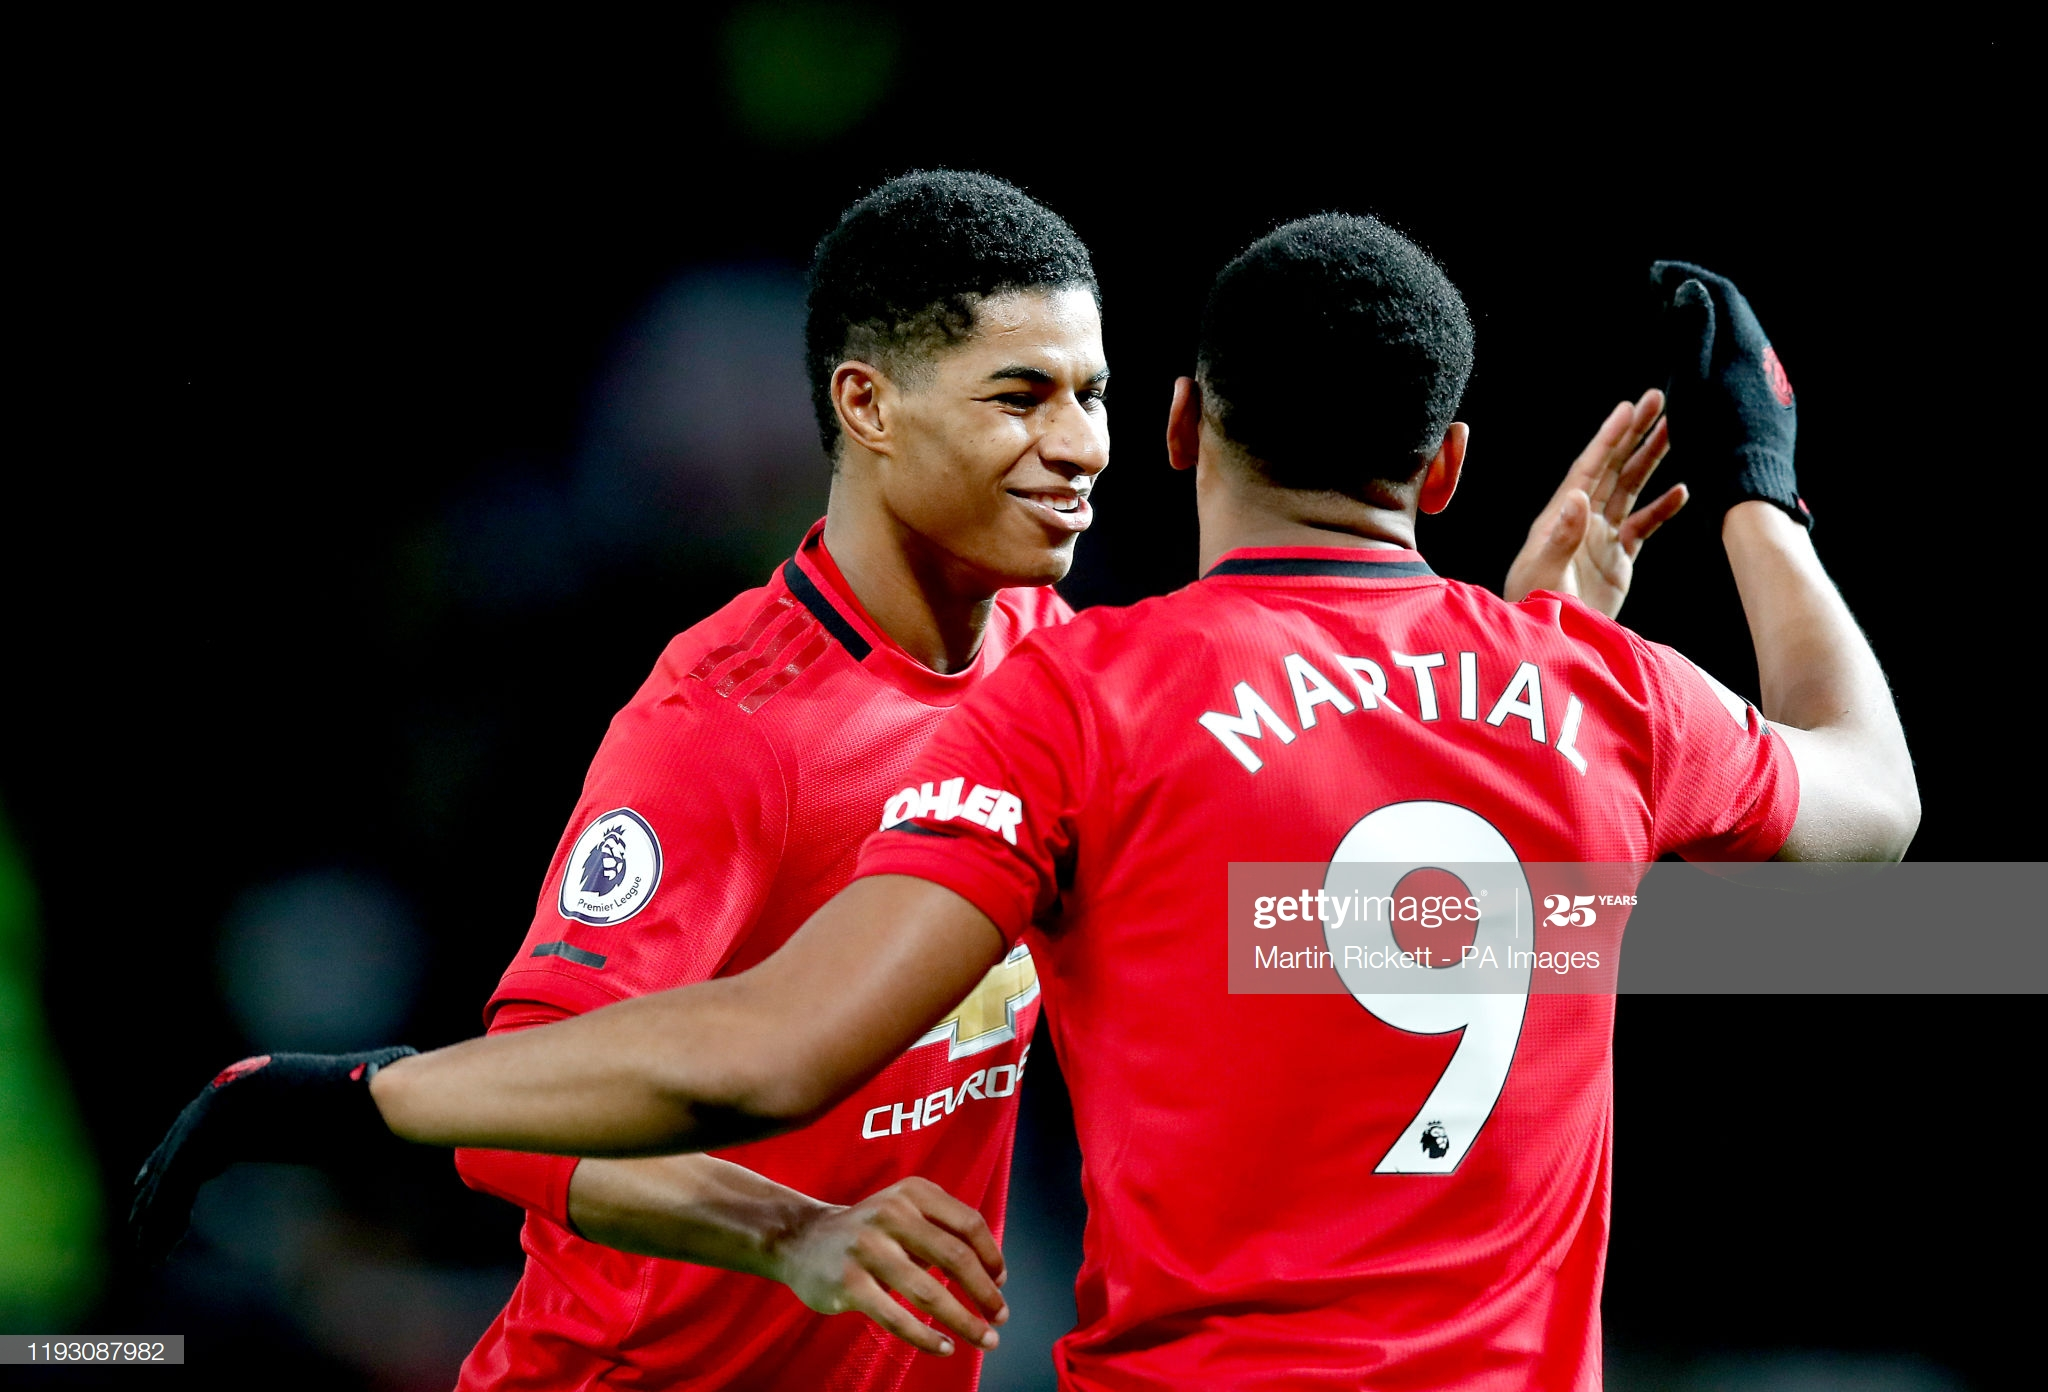 Rashford and Martial become first Man United pairing to hit 20 goals since CR7 and Tevez